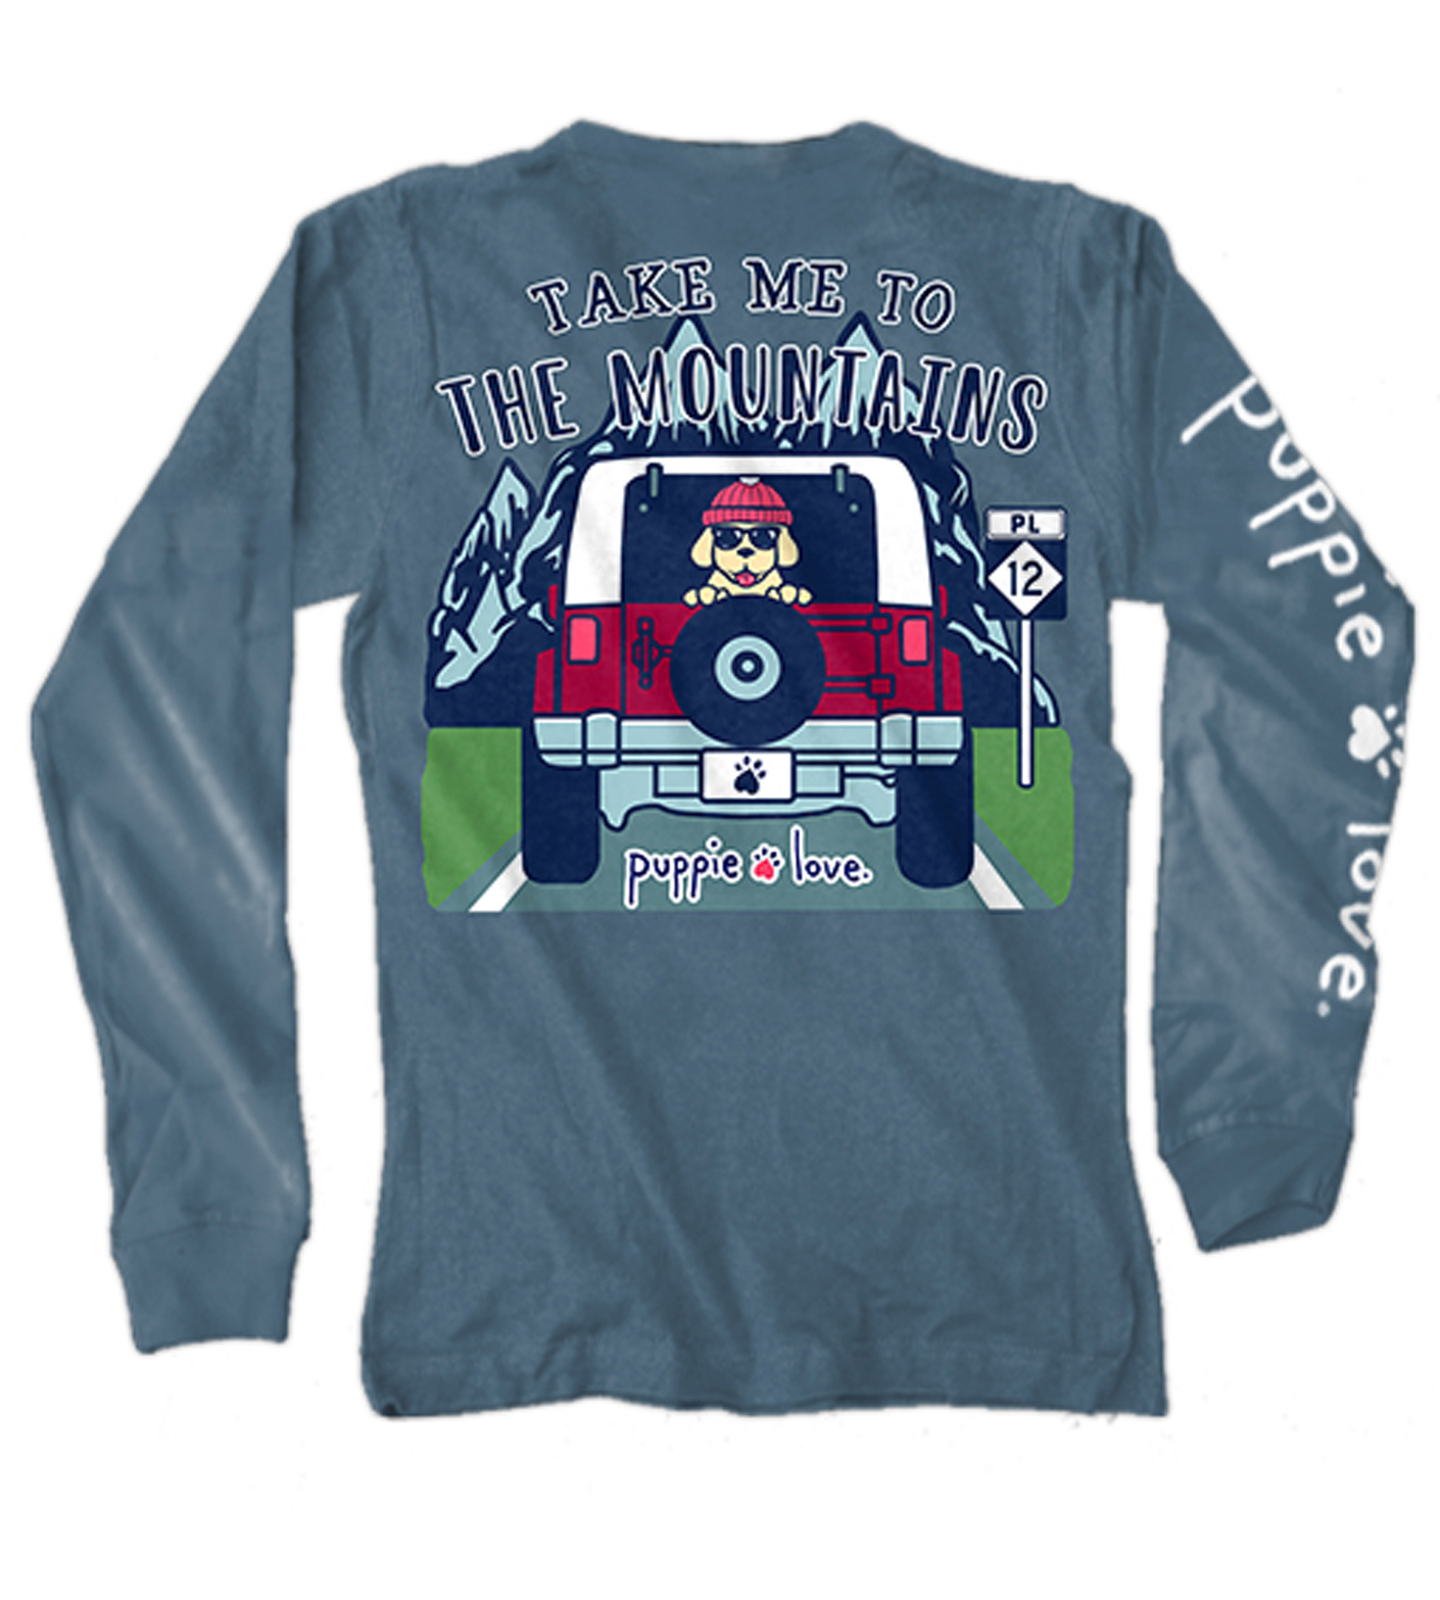 Take me to the mountains ind ls 3